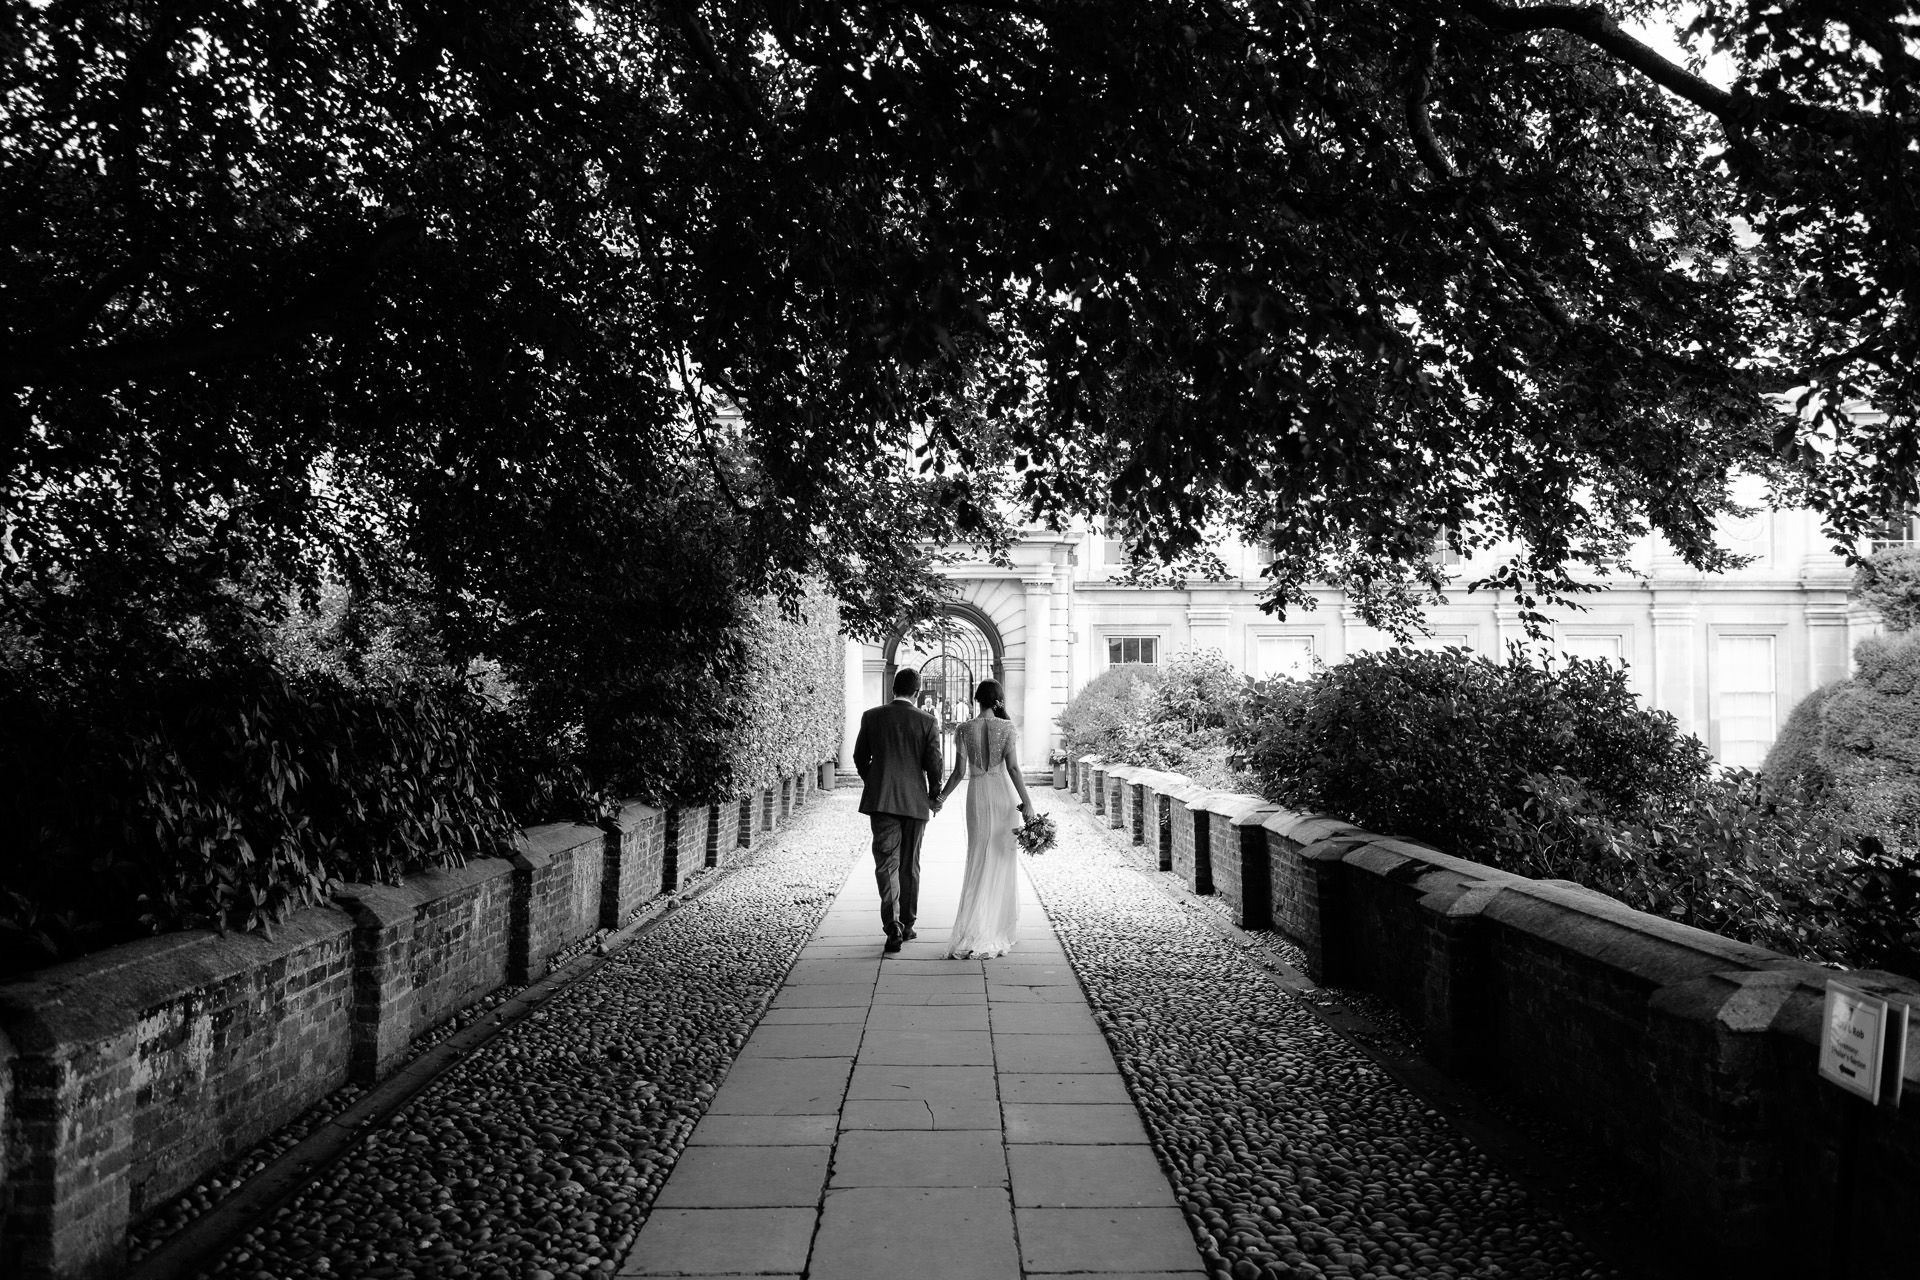 weddding photgraphy session of the young couple in london